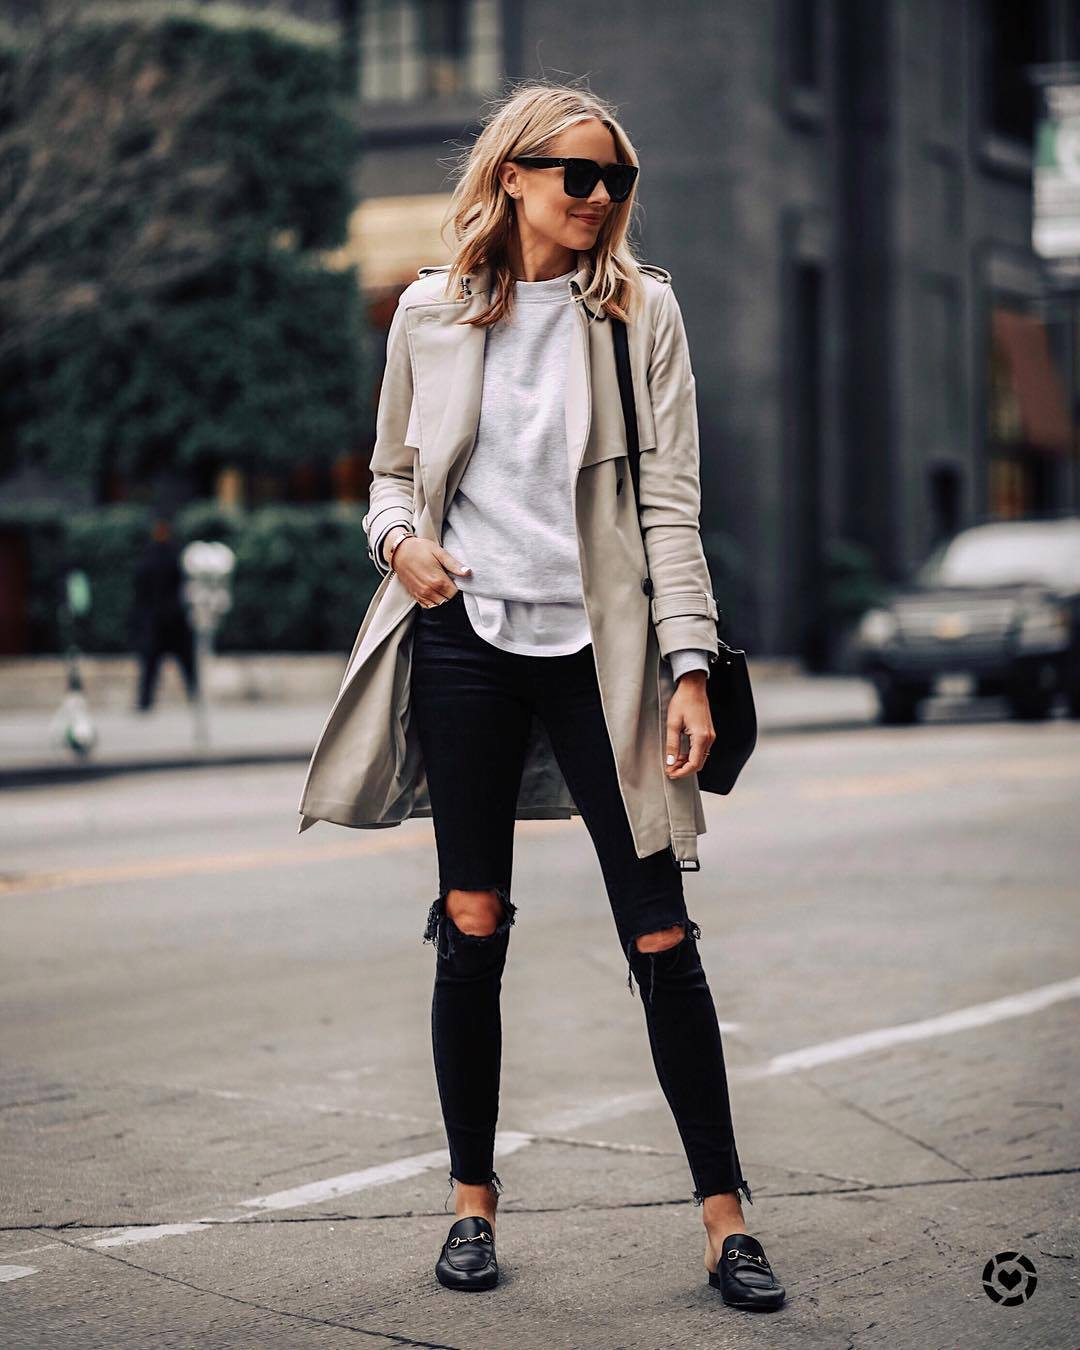 jeans black skinny jeans cropped jeans ripped jeans black loafers mules trench coat sweatshirt white t-shirt black sunglasses black bag